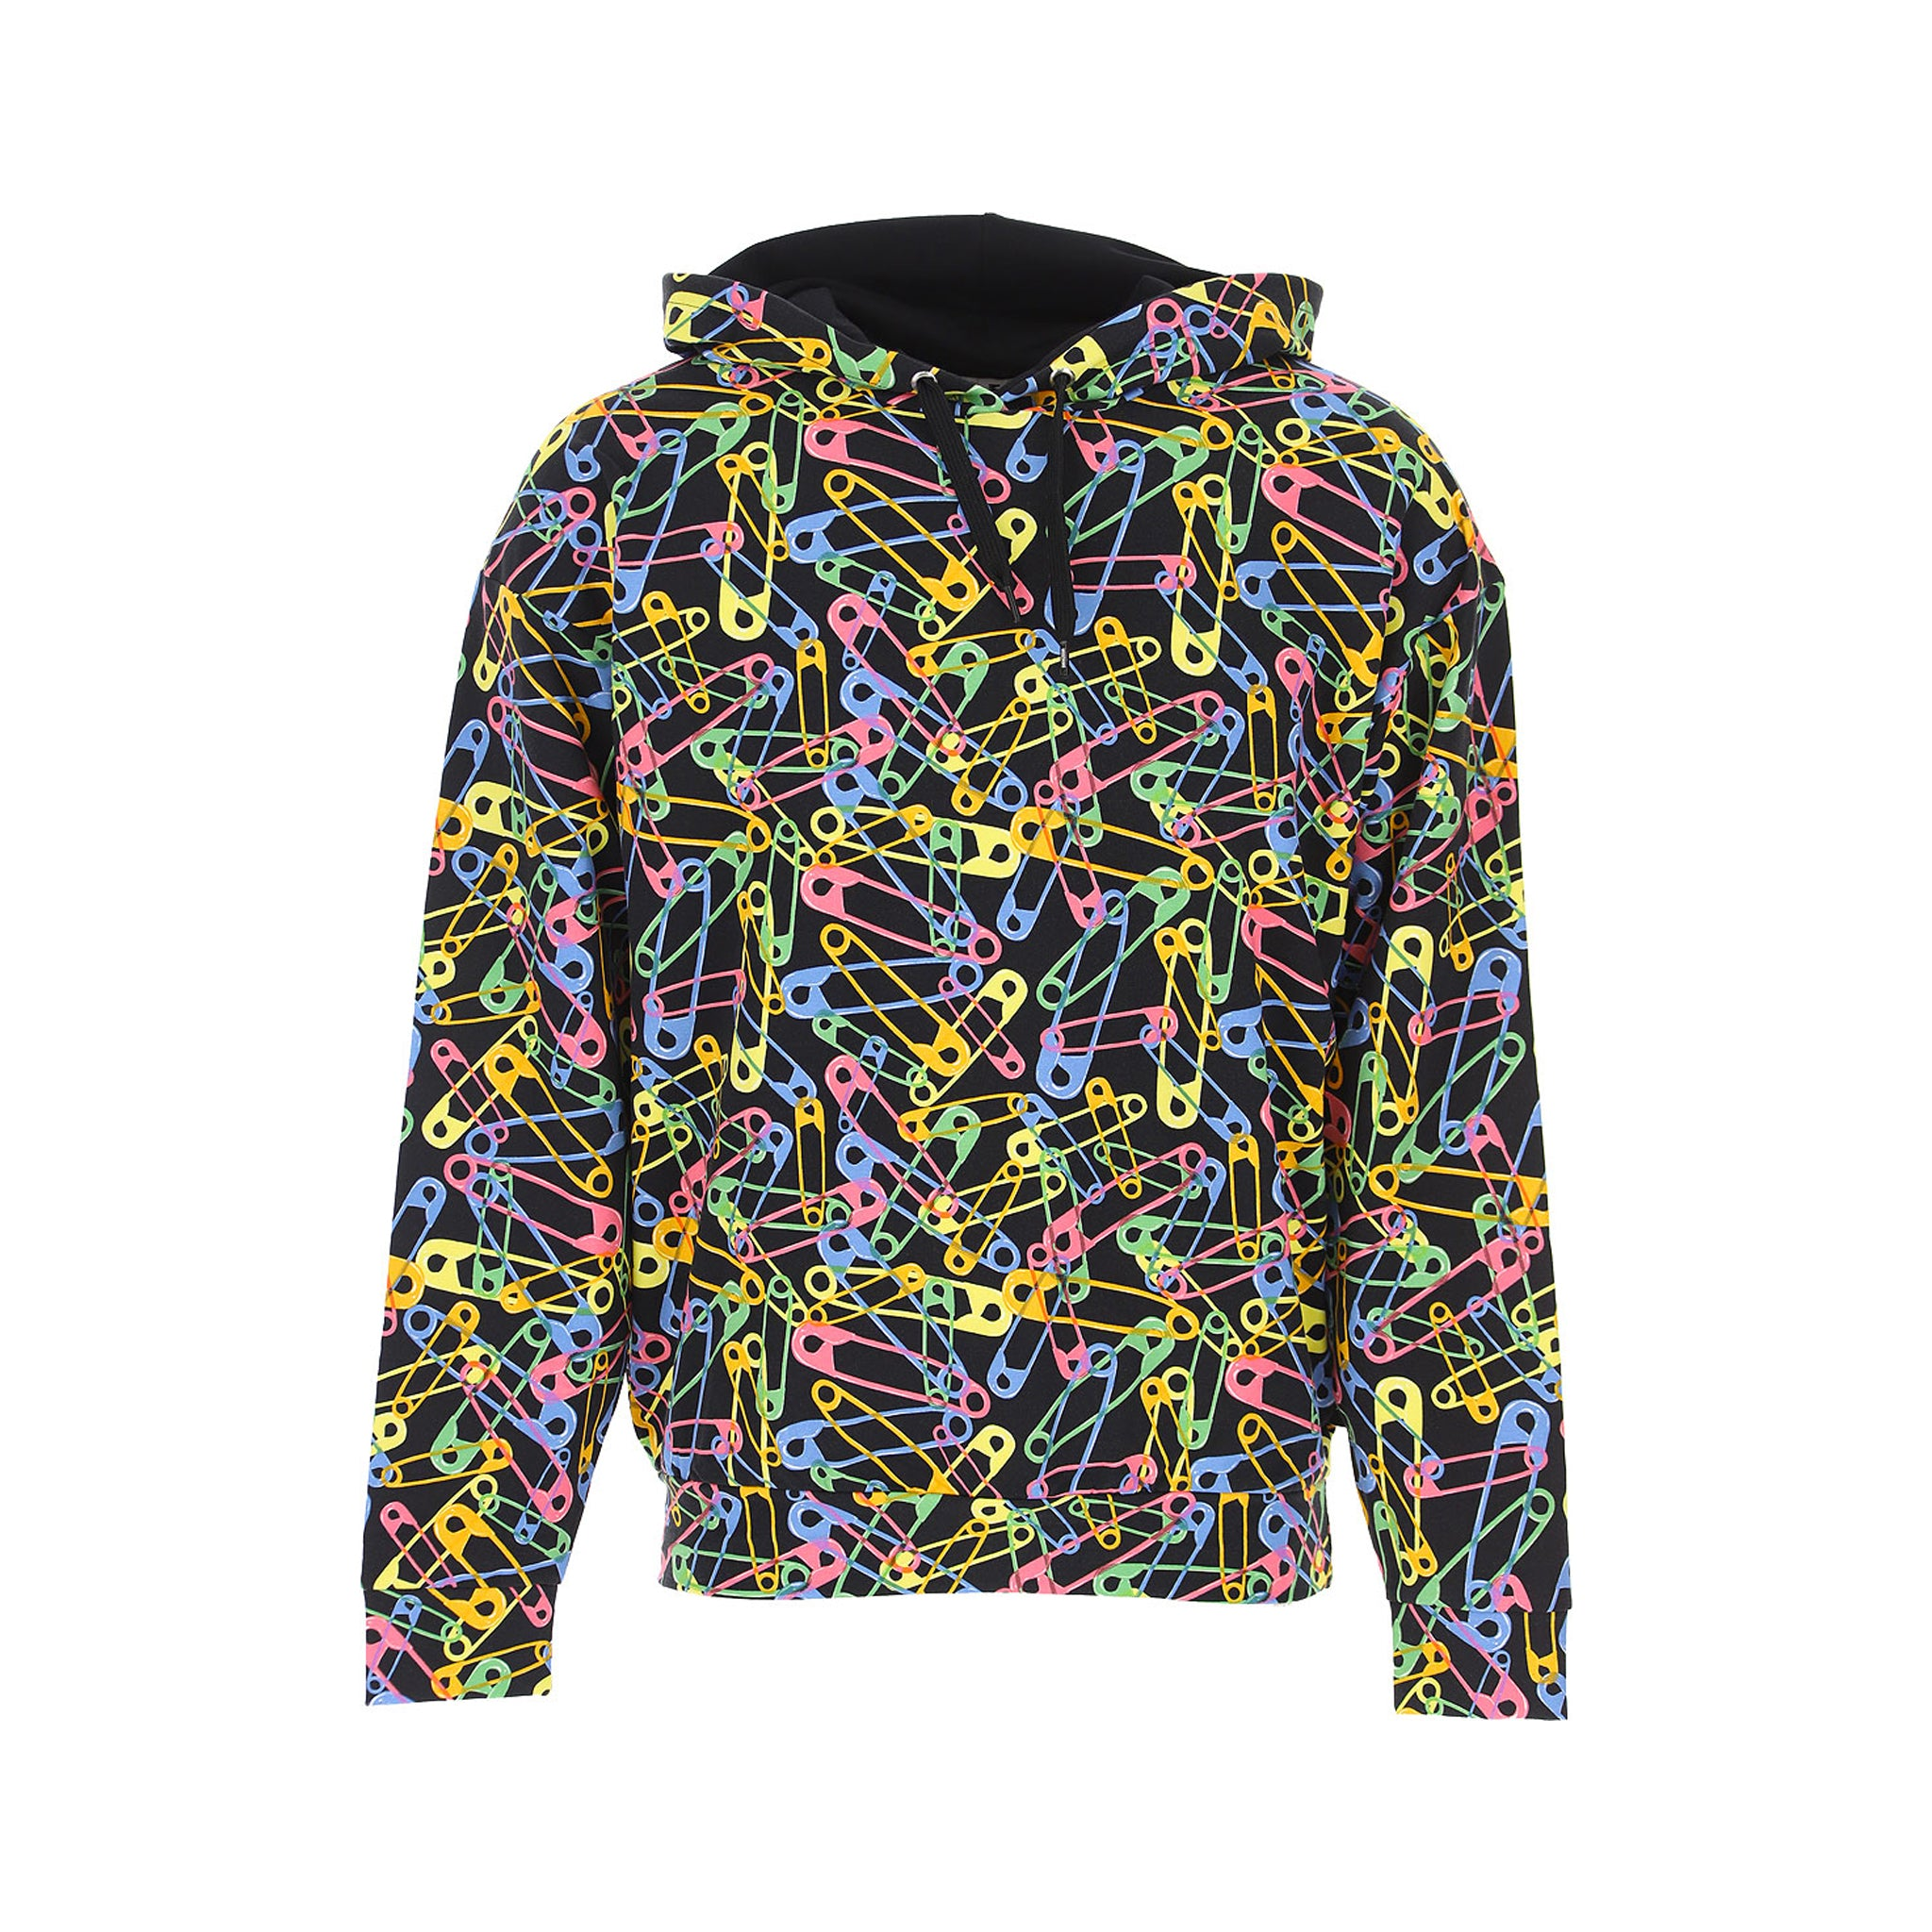 Moschino Underwear Pin Print Hooded Sweatshirt